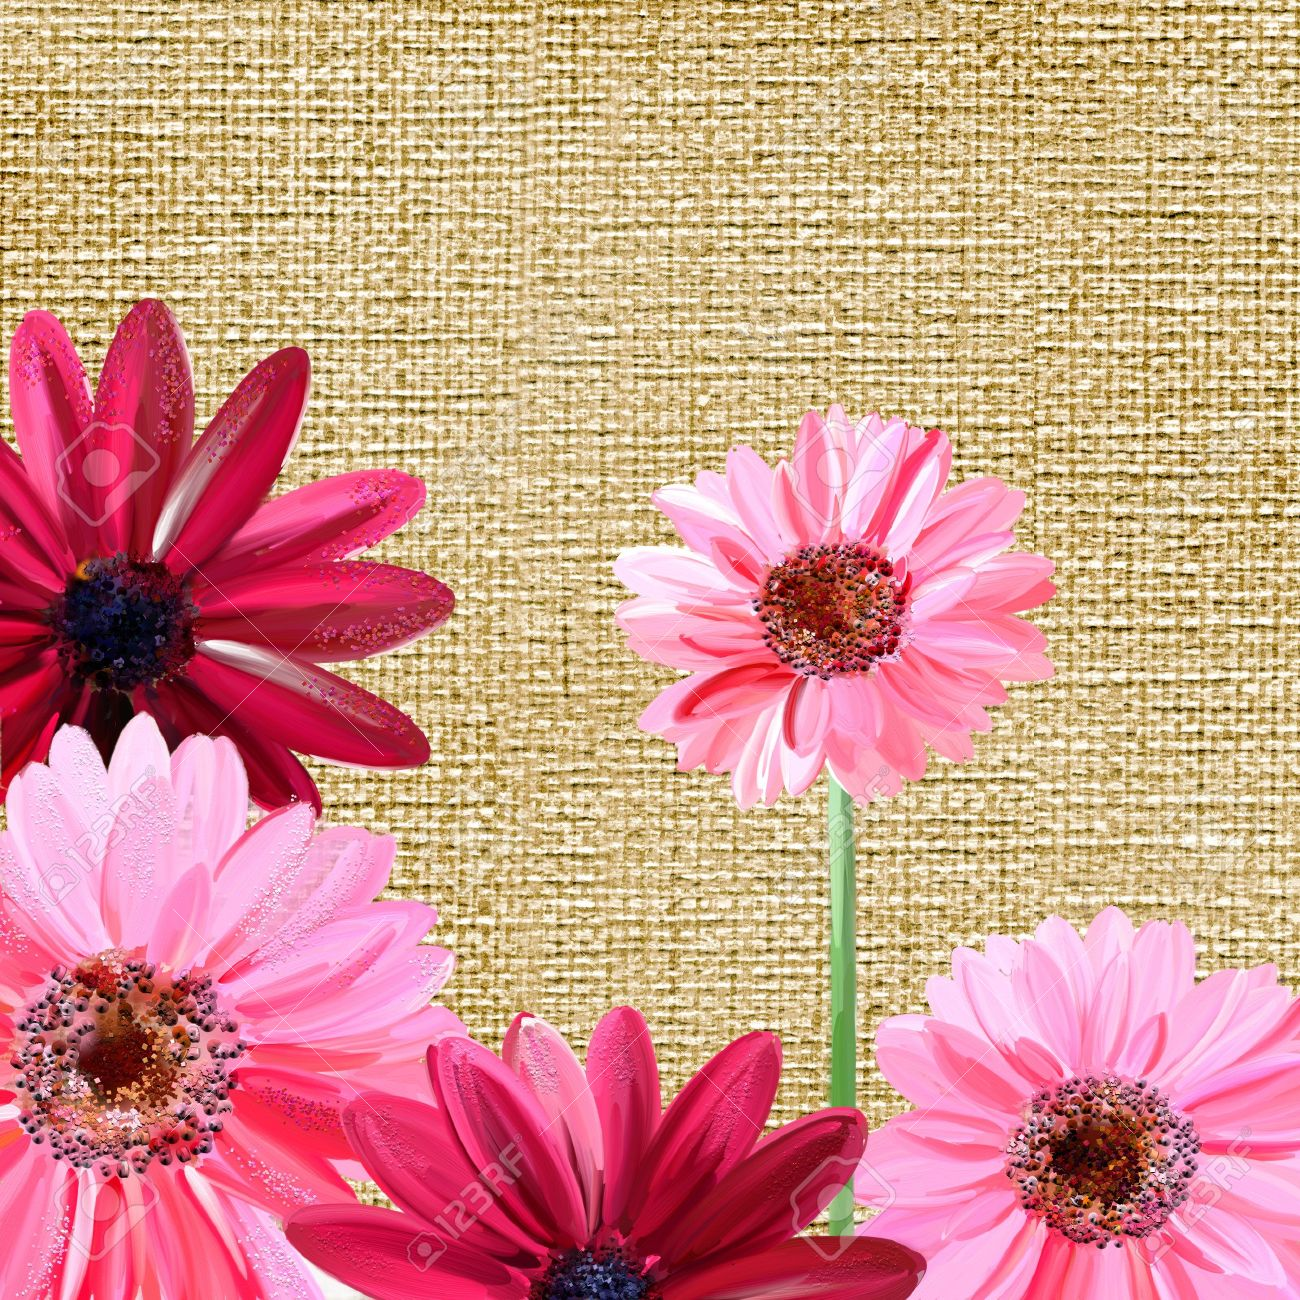 Pink painted flowers over canvas texture stock photo picture and pink painted flowers over canvas texture stock photo 2409967 mightylinksfo